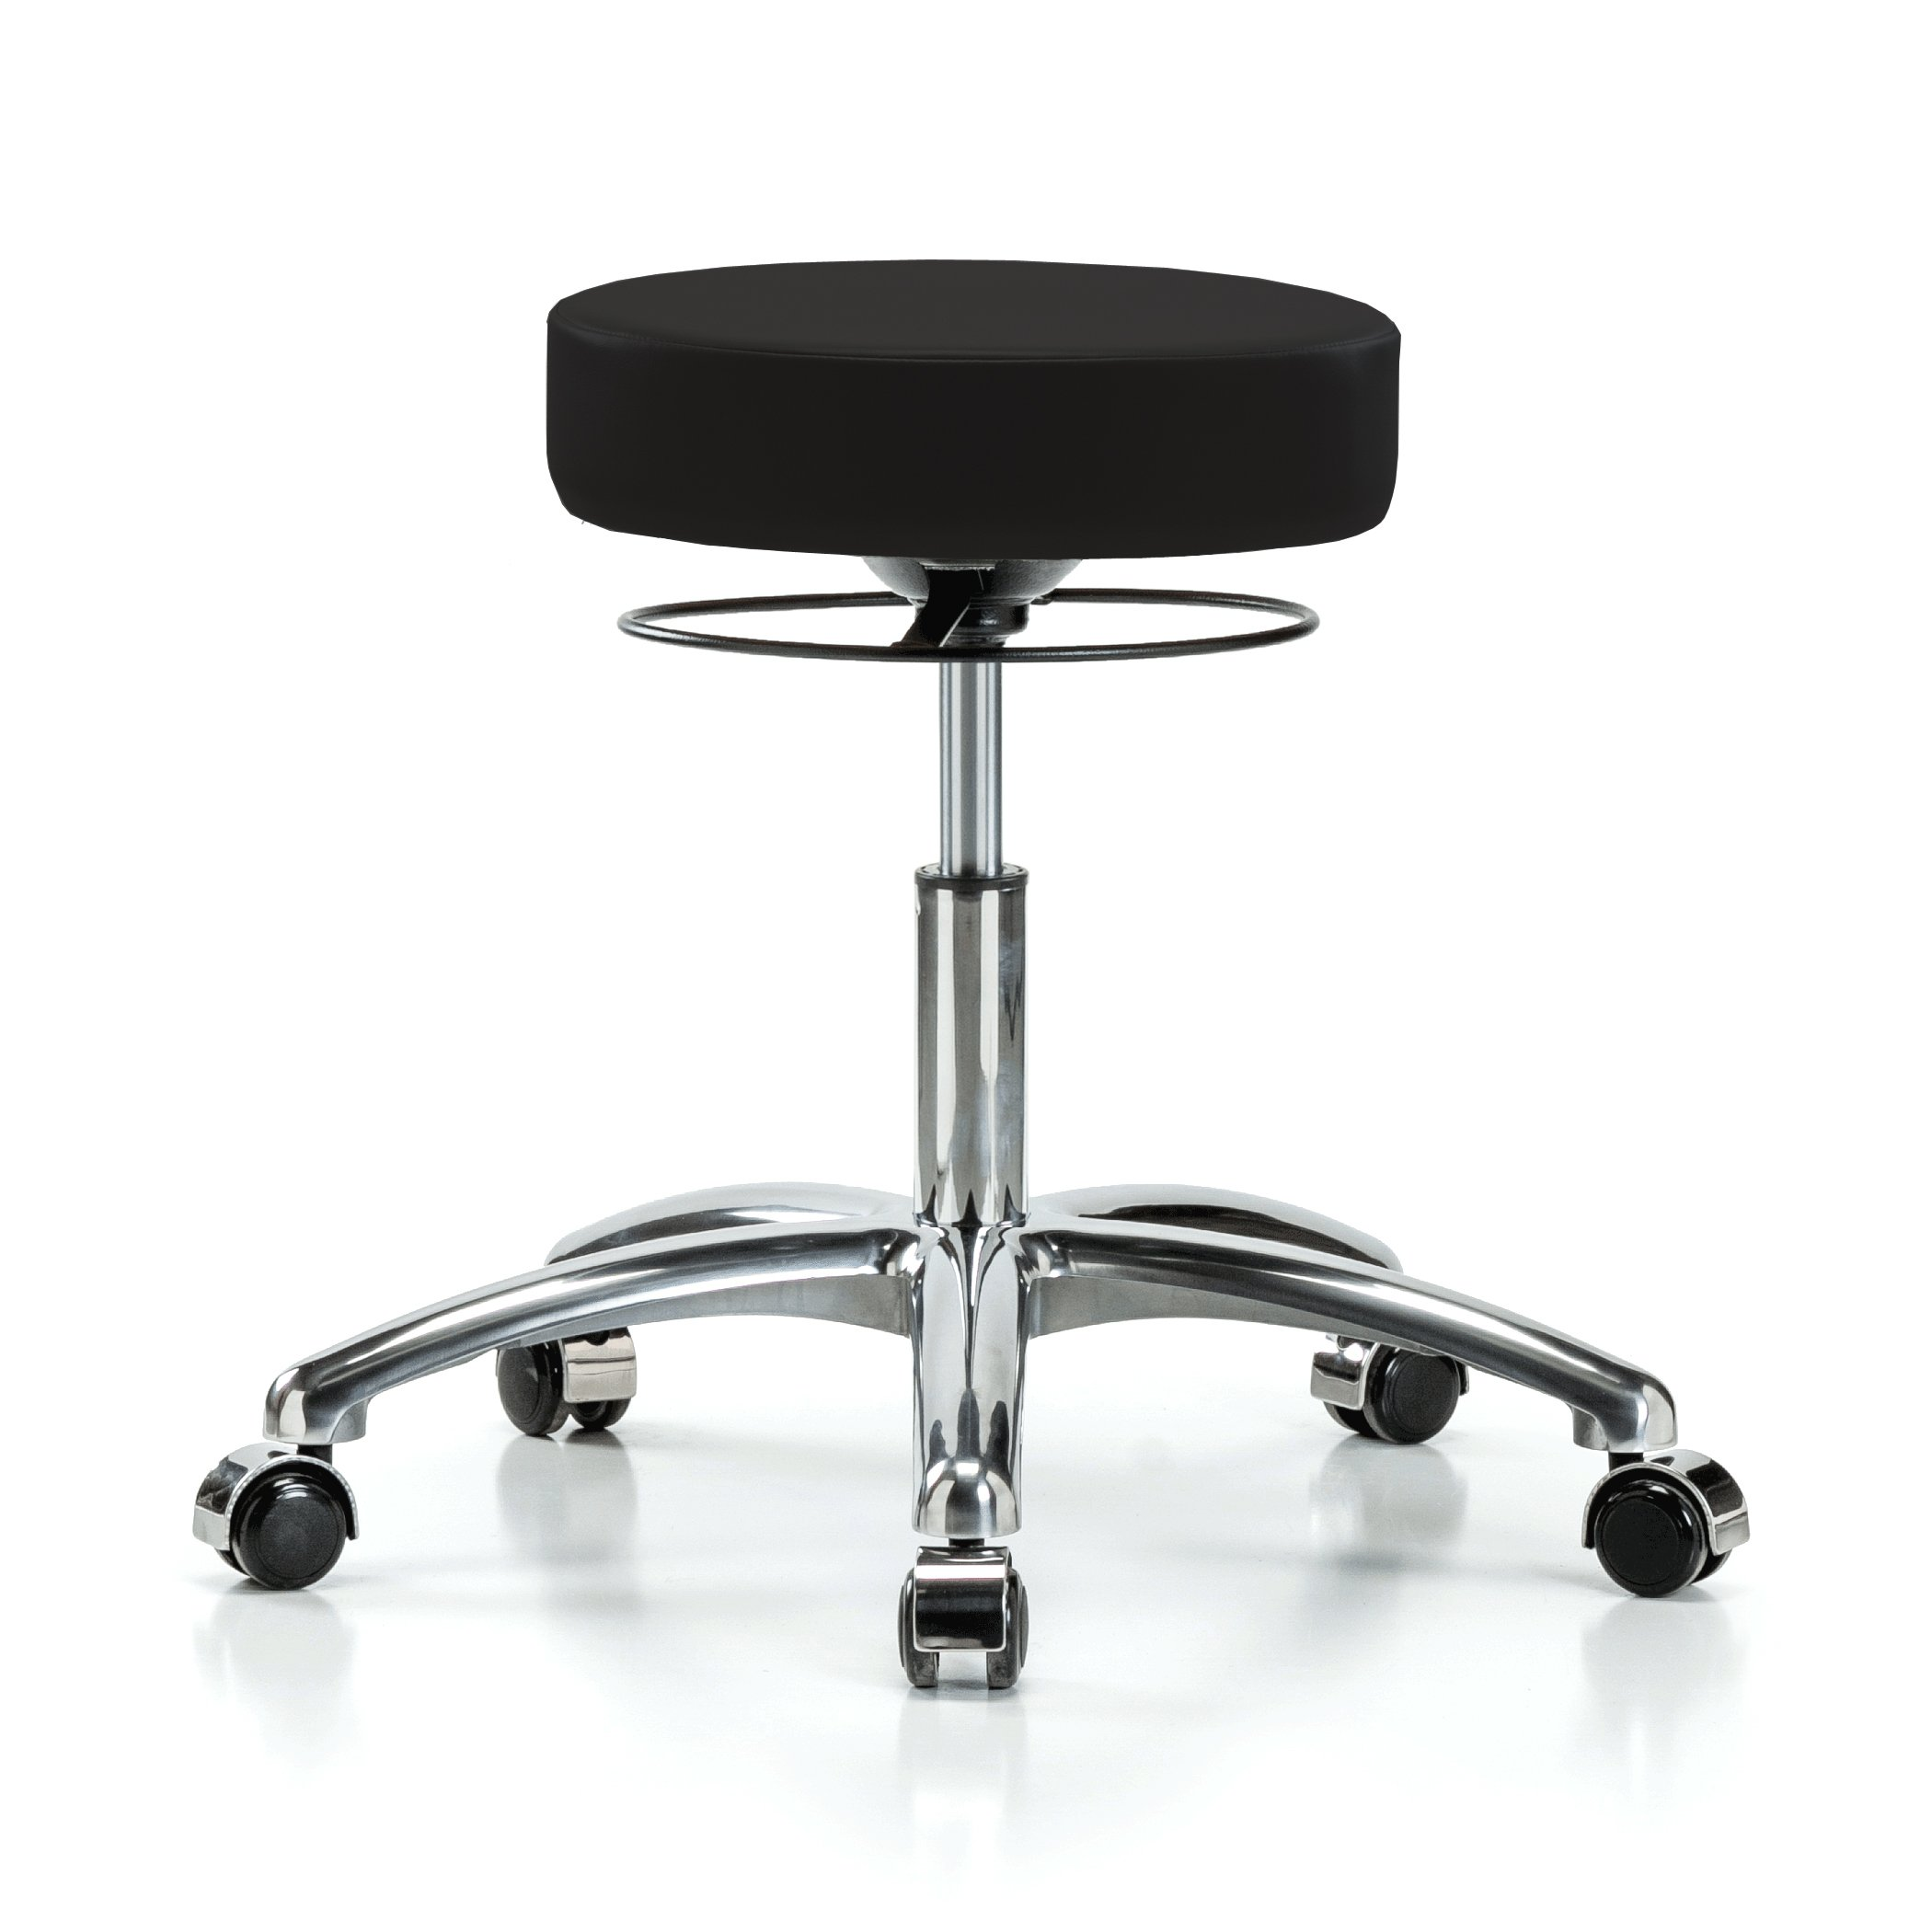 Perch Chrome Stella Rolling Adjustable Stool Medical Salon Spa Massage Tattoo Office 18.5'' - 24'' (Hard Floor Casters/Black Vinyl)